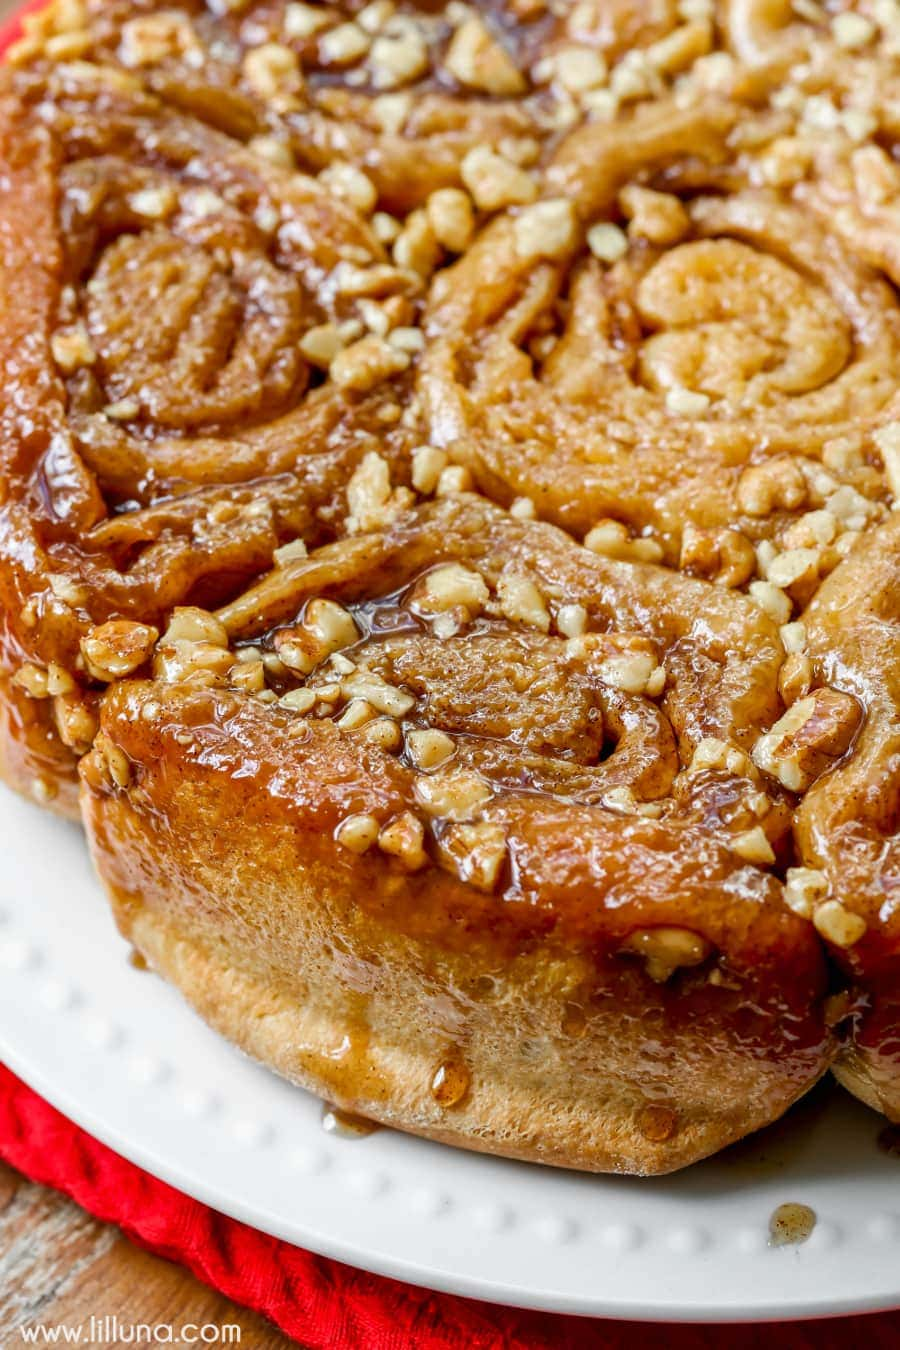 Cinnamon Walnut Sticky Buns - a twist on traditional cinnamon rolls, these sticky buns are finger lickin' good!! With a delicious cinnamon filling and topped with a honey, brown sugar, and walnut glaze... SO GOOD!